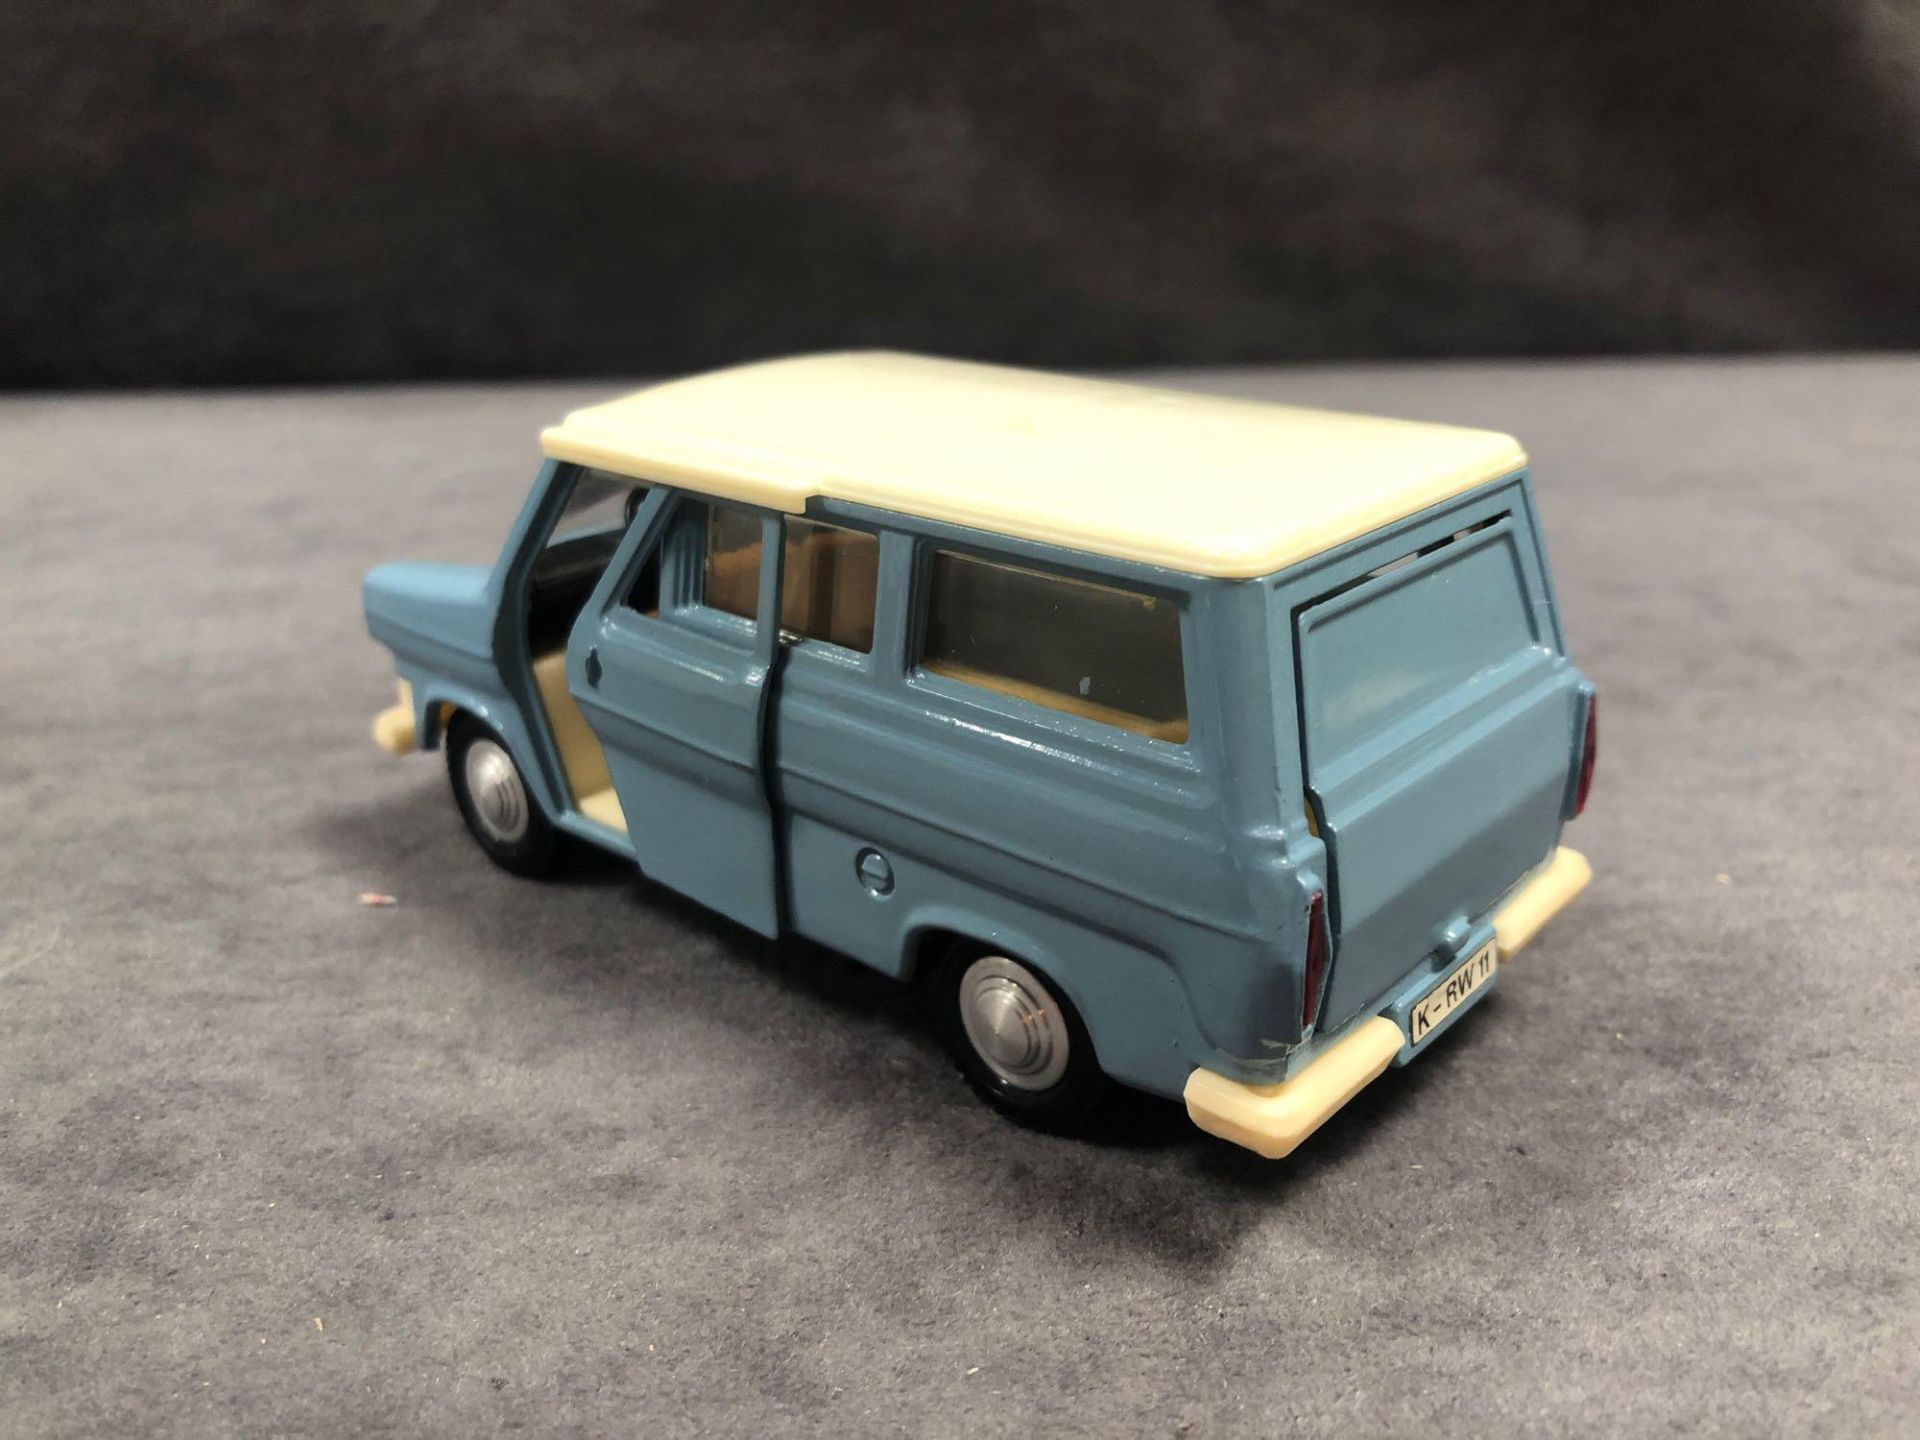 R.W.-Modell (Germany) #400 Ford Transit Kombi In Box - Image 3 of 3